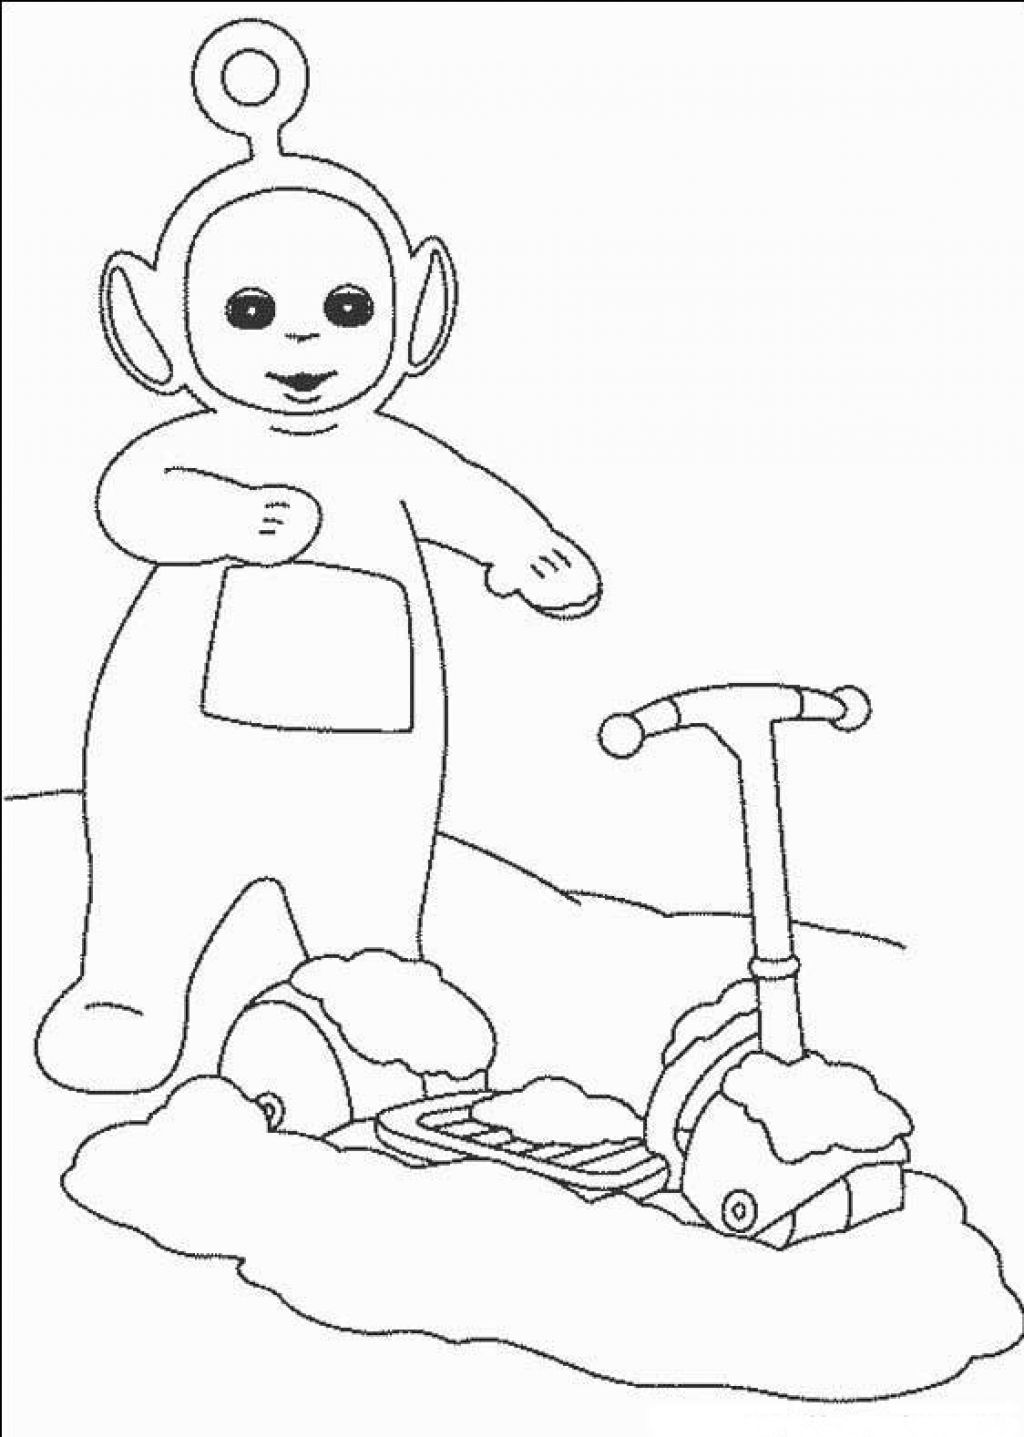 Free printable teletubbies coloring pages for kids for Fun coloring pages for kids